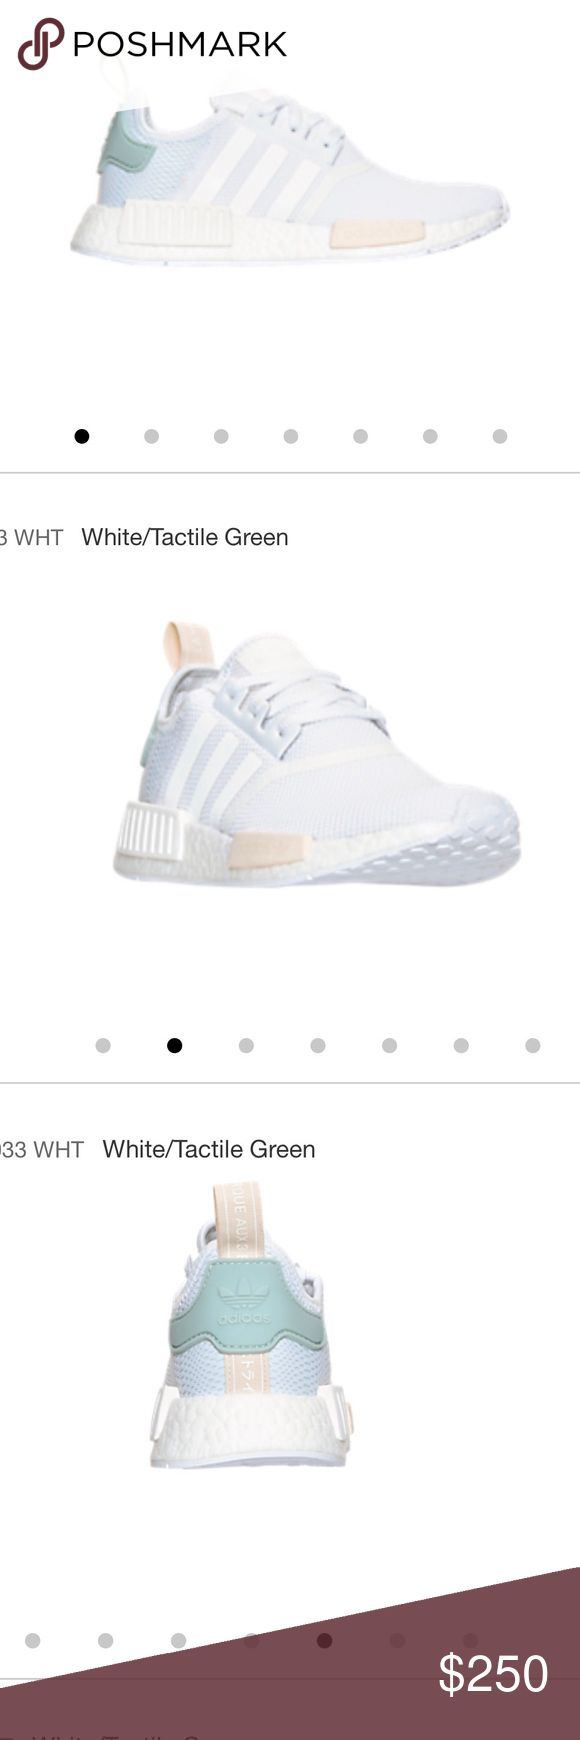 sale retailer 02db3 eb085 ... Adidas NMD whitetactile green Authentic Adidas NMD , Brand new , 2 size  7 in womens ...